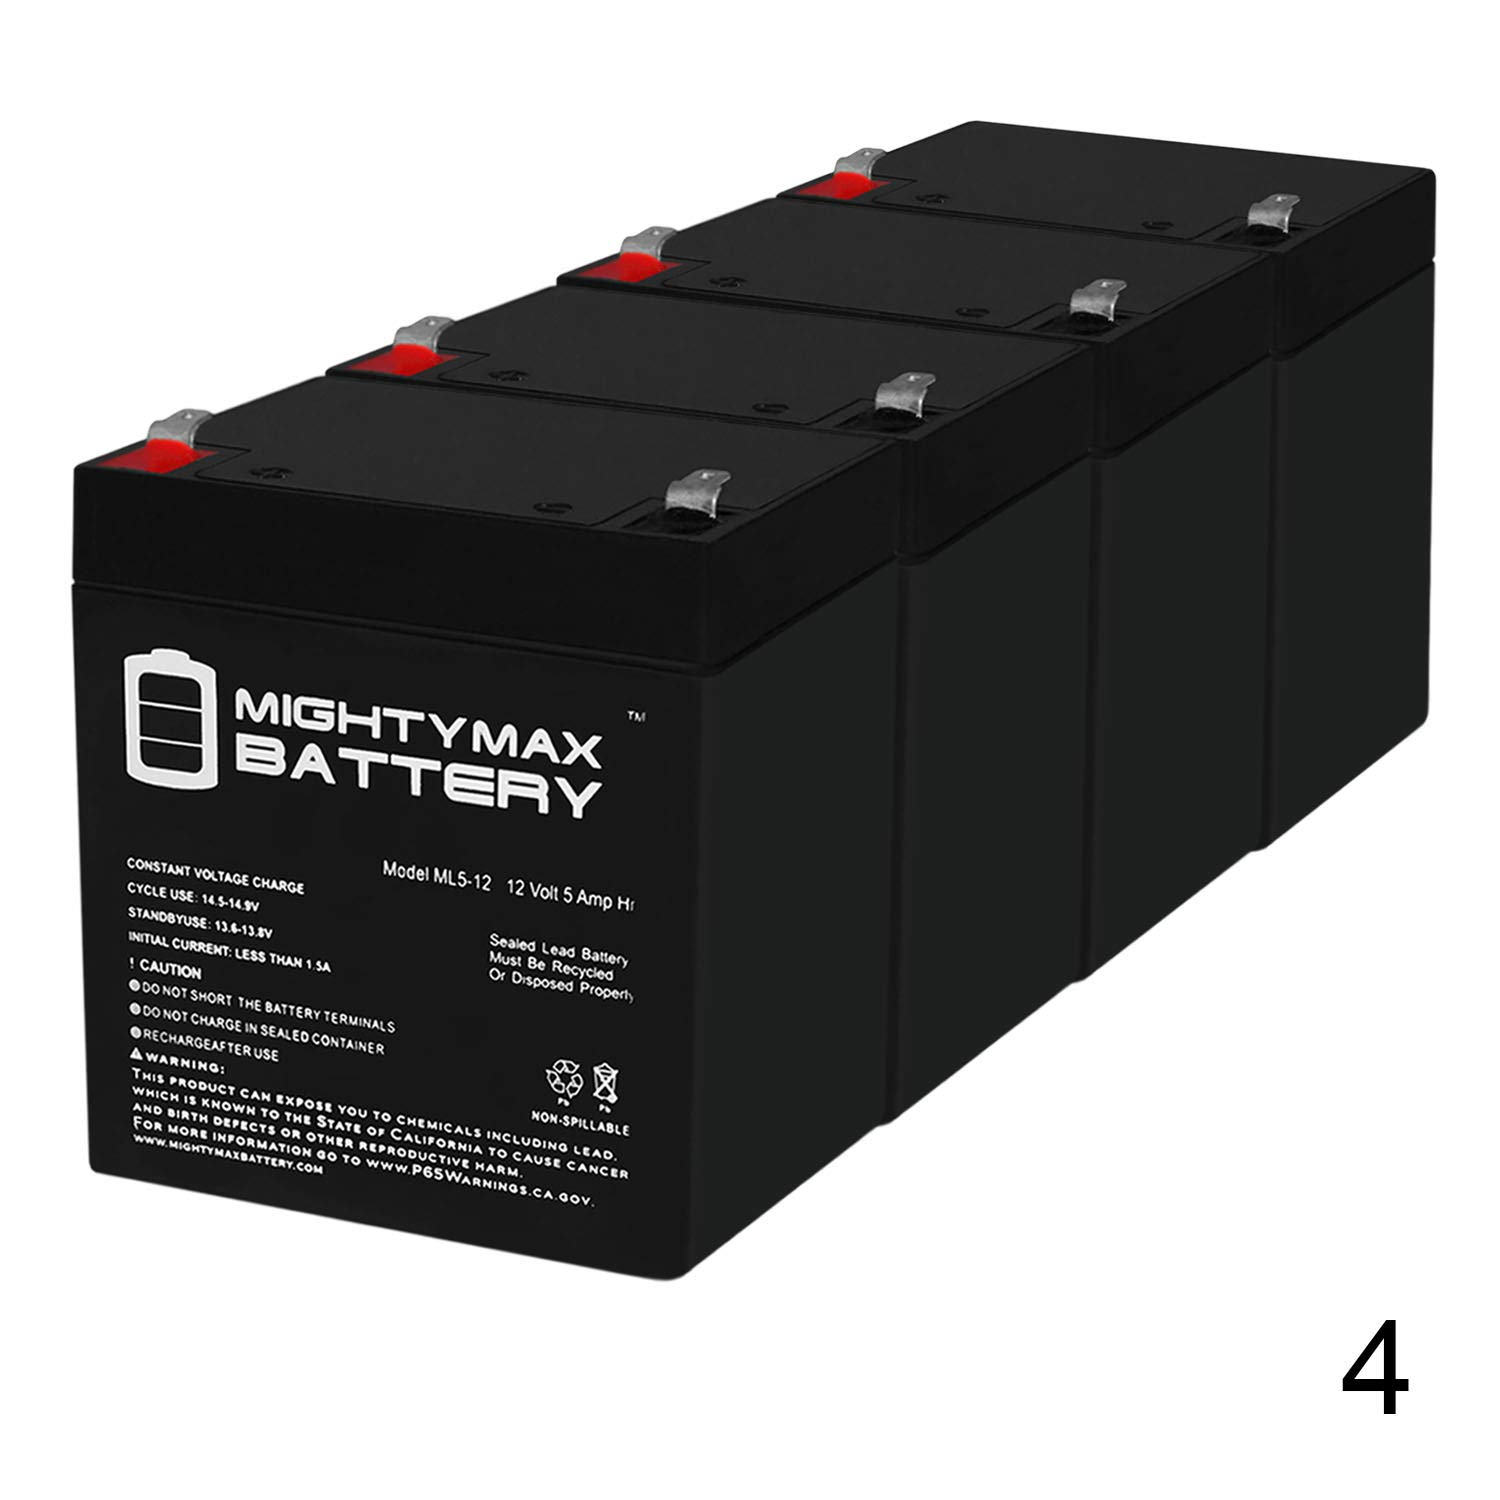 Mighty Max Battery ML5-12 - 12V 5AH Battery for Razor E100 E125 E150 E175 Electric Scooter - 4 Pack Brand Product by Mighty Max Battery